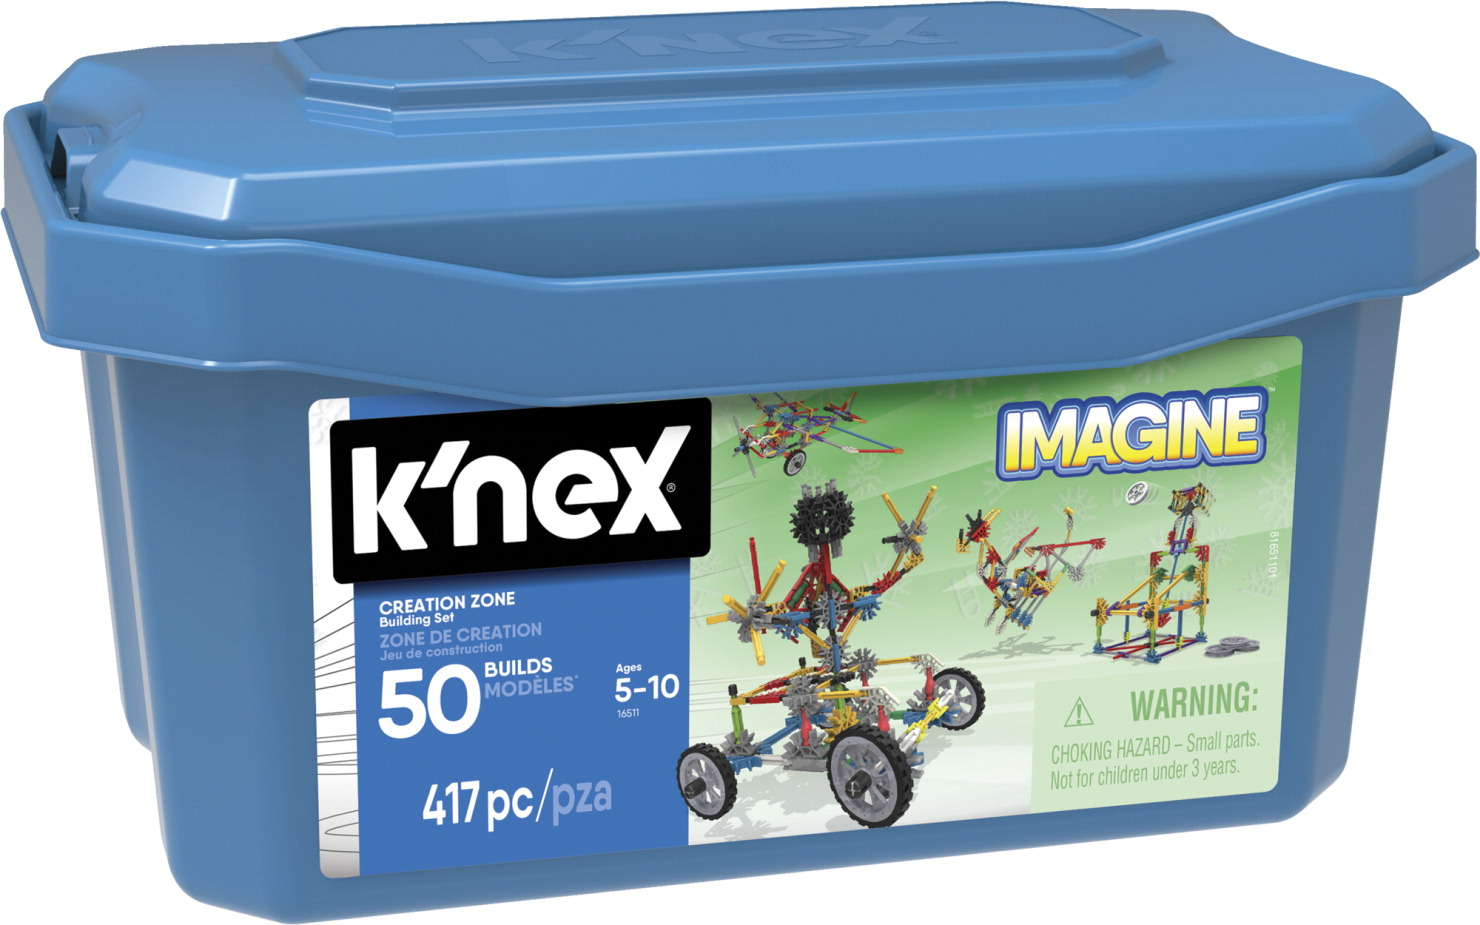 K'NEX Imagine Creation Zone Building Set, 417 Pieces